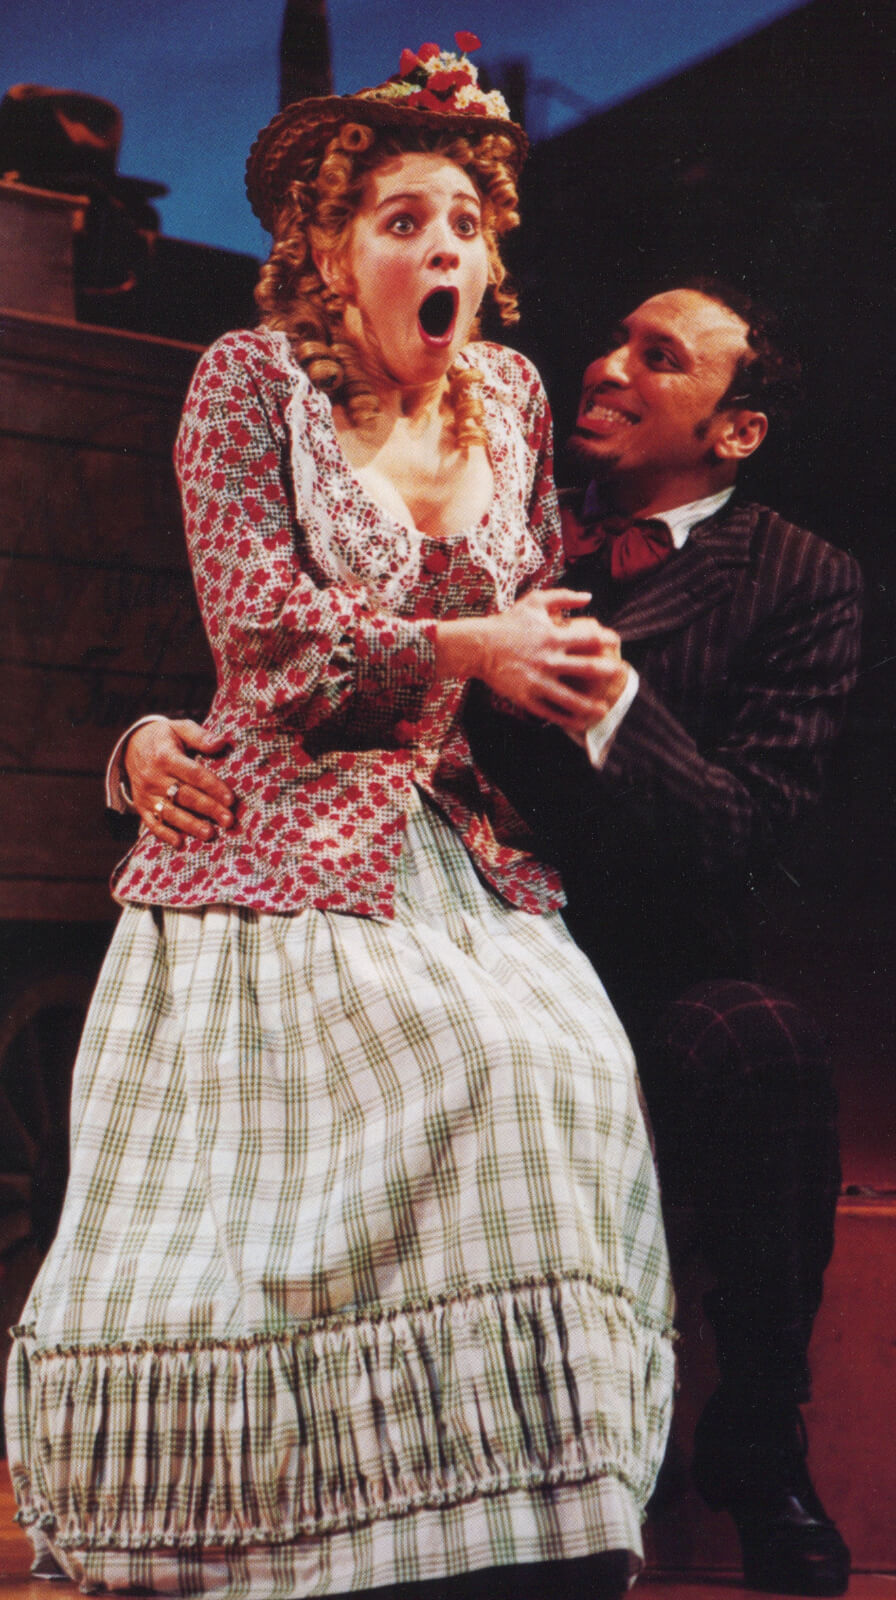 Curly brunette Ado Annie Carnes (Vicki Simon) in a big patterned-dress and hat with flowers gasps as Ali Hakim in a striped tuxedo assists her.